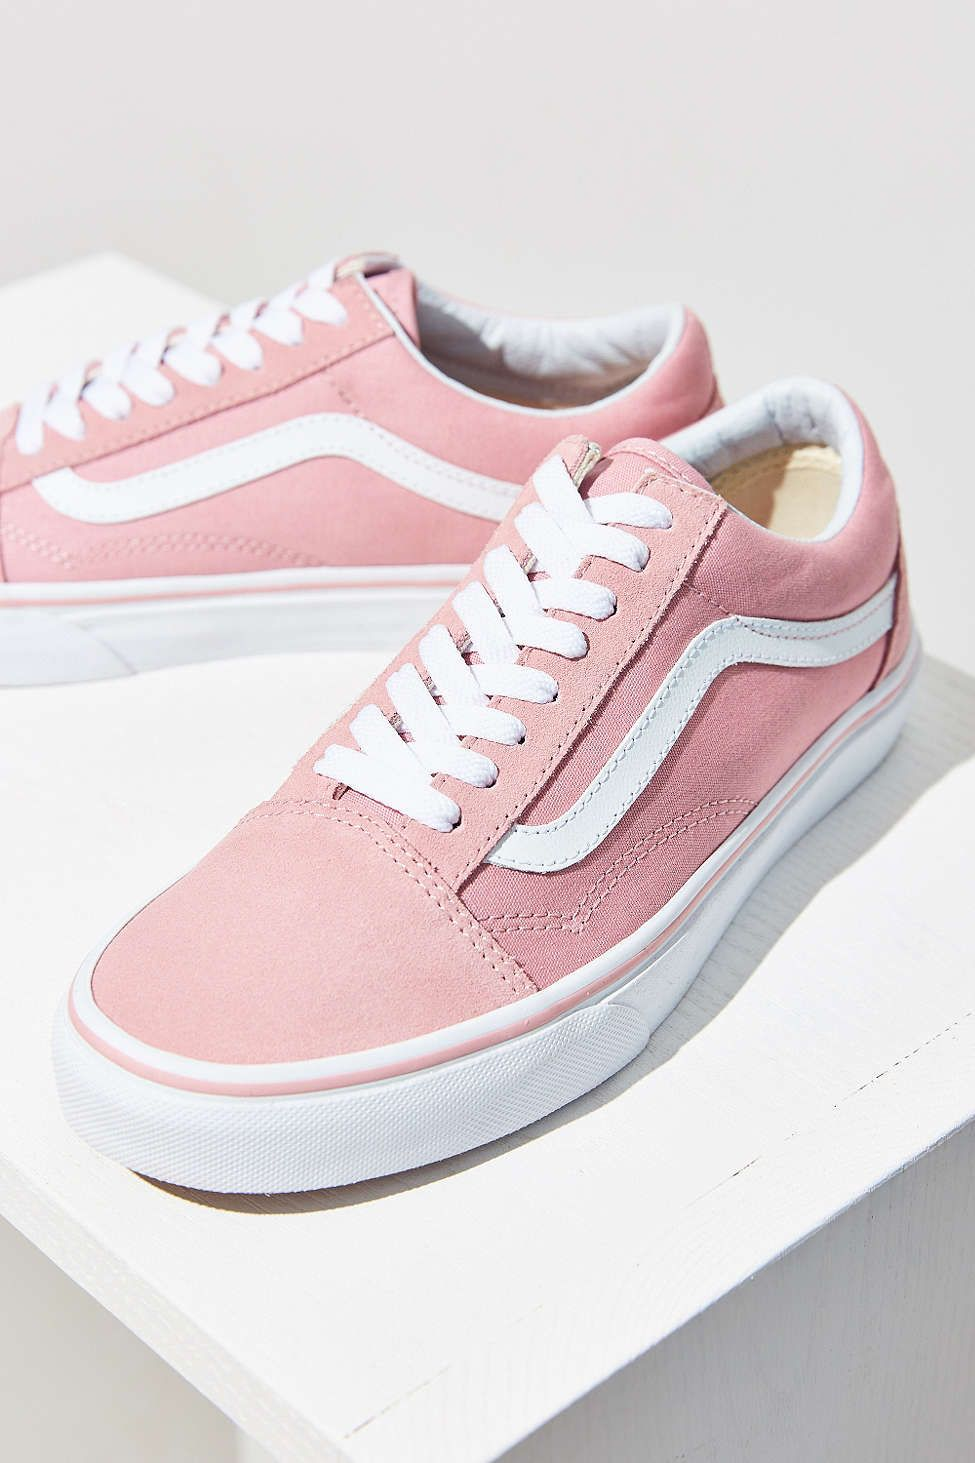 Vans Pink Old Skool Sneaker | Pink vans, Pink shoes, Vans